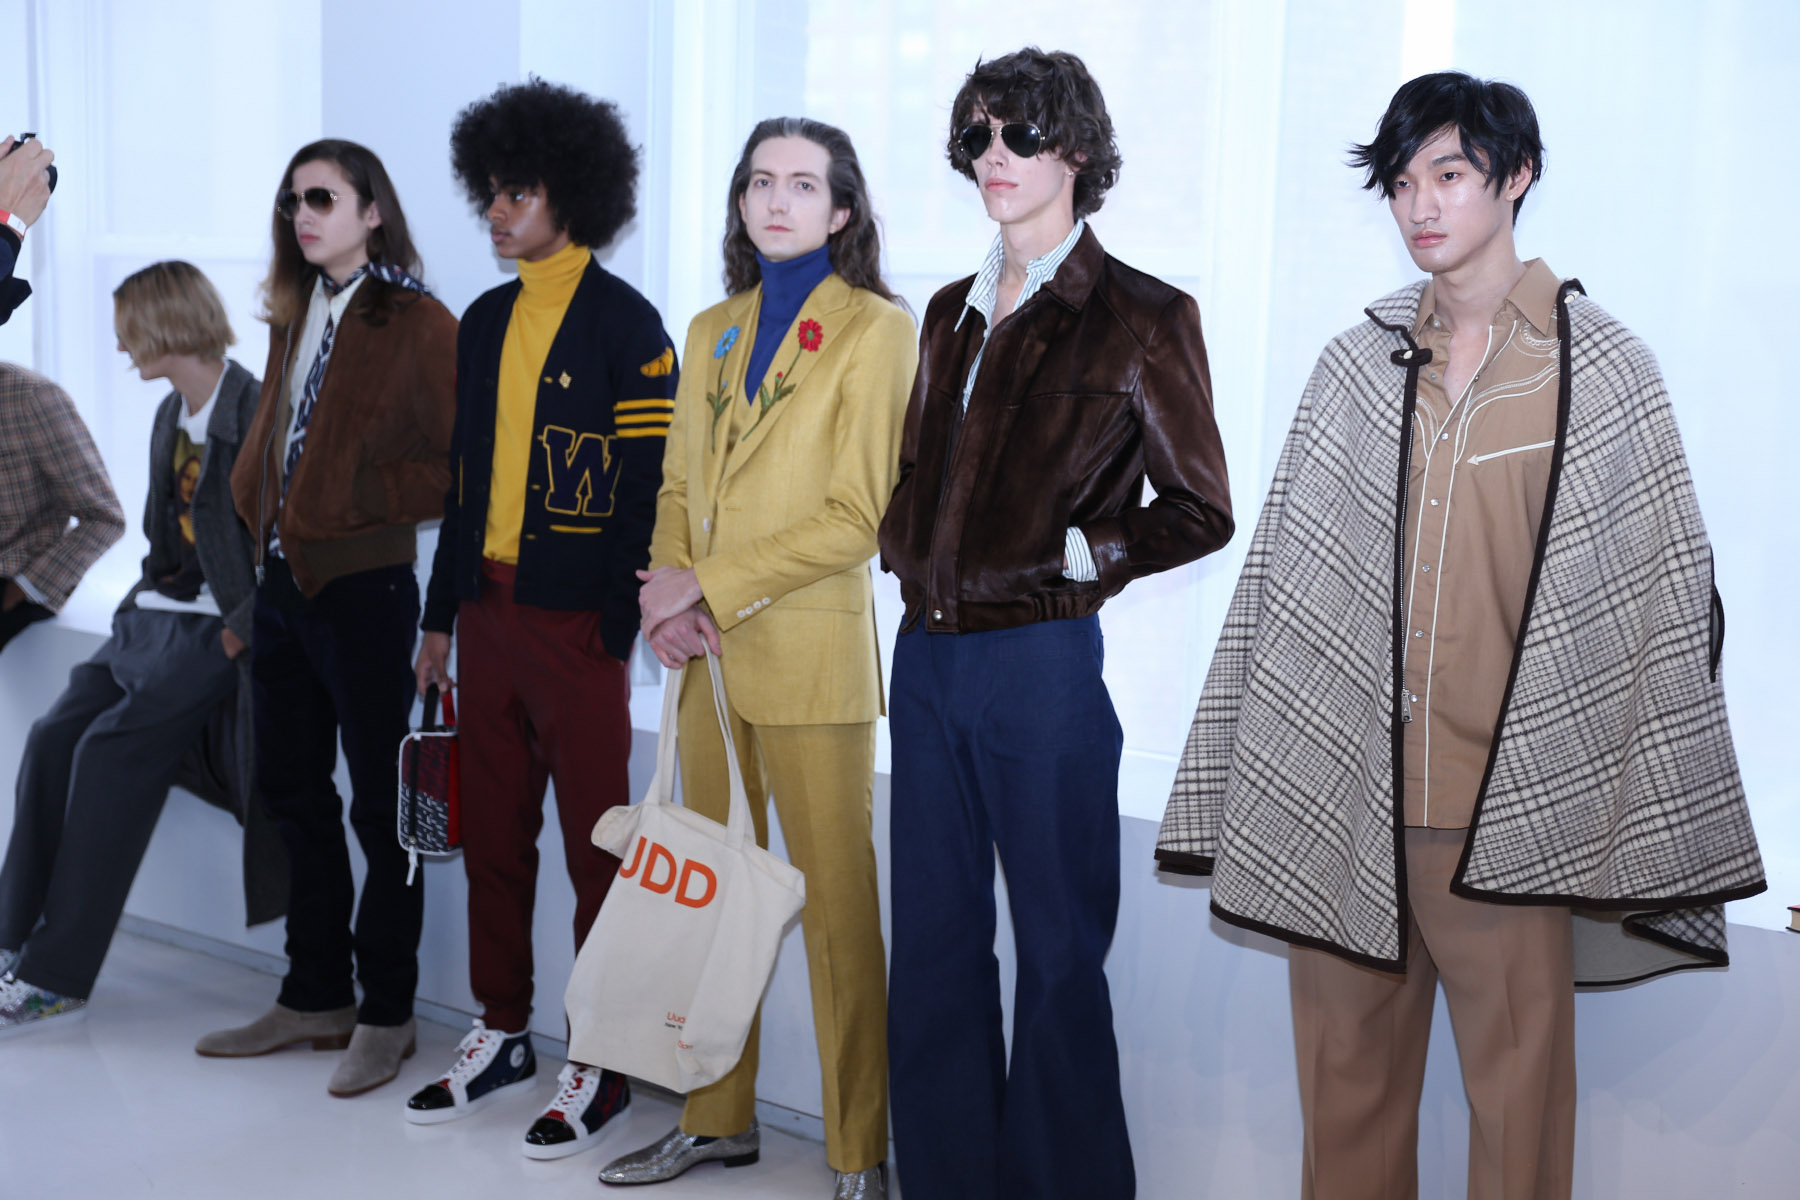 R. MUTT BY DAVID HART FALL WINTER 2020 NEW YORK MENS DAY LOOKS